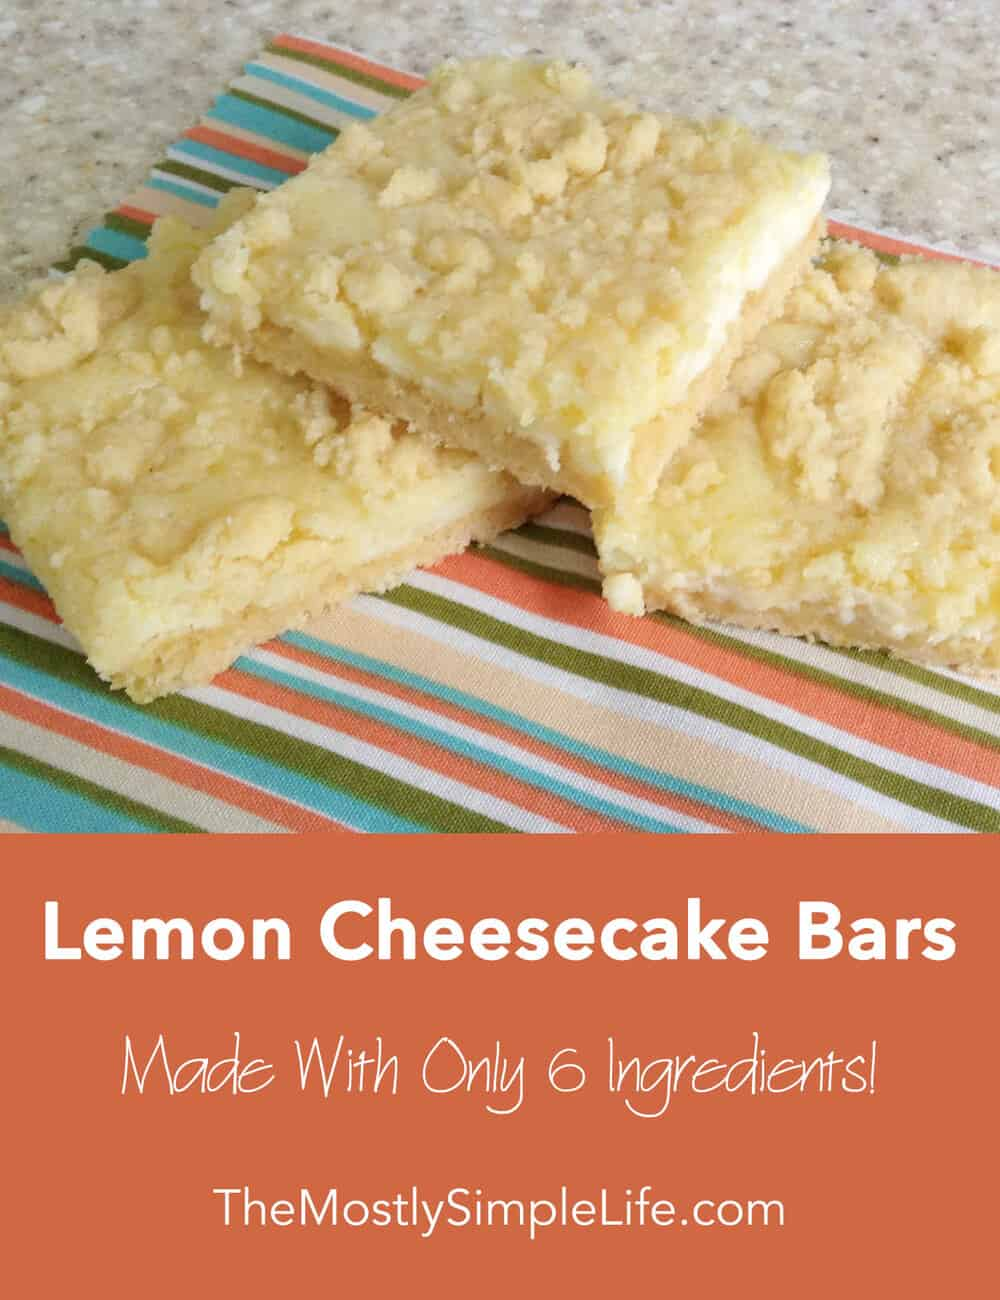 Lemon Cheesecake Bars - The (mostly) Simple Life